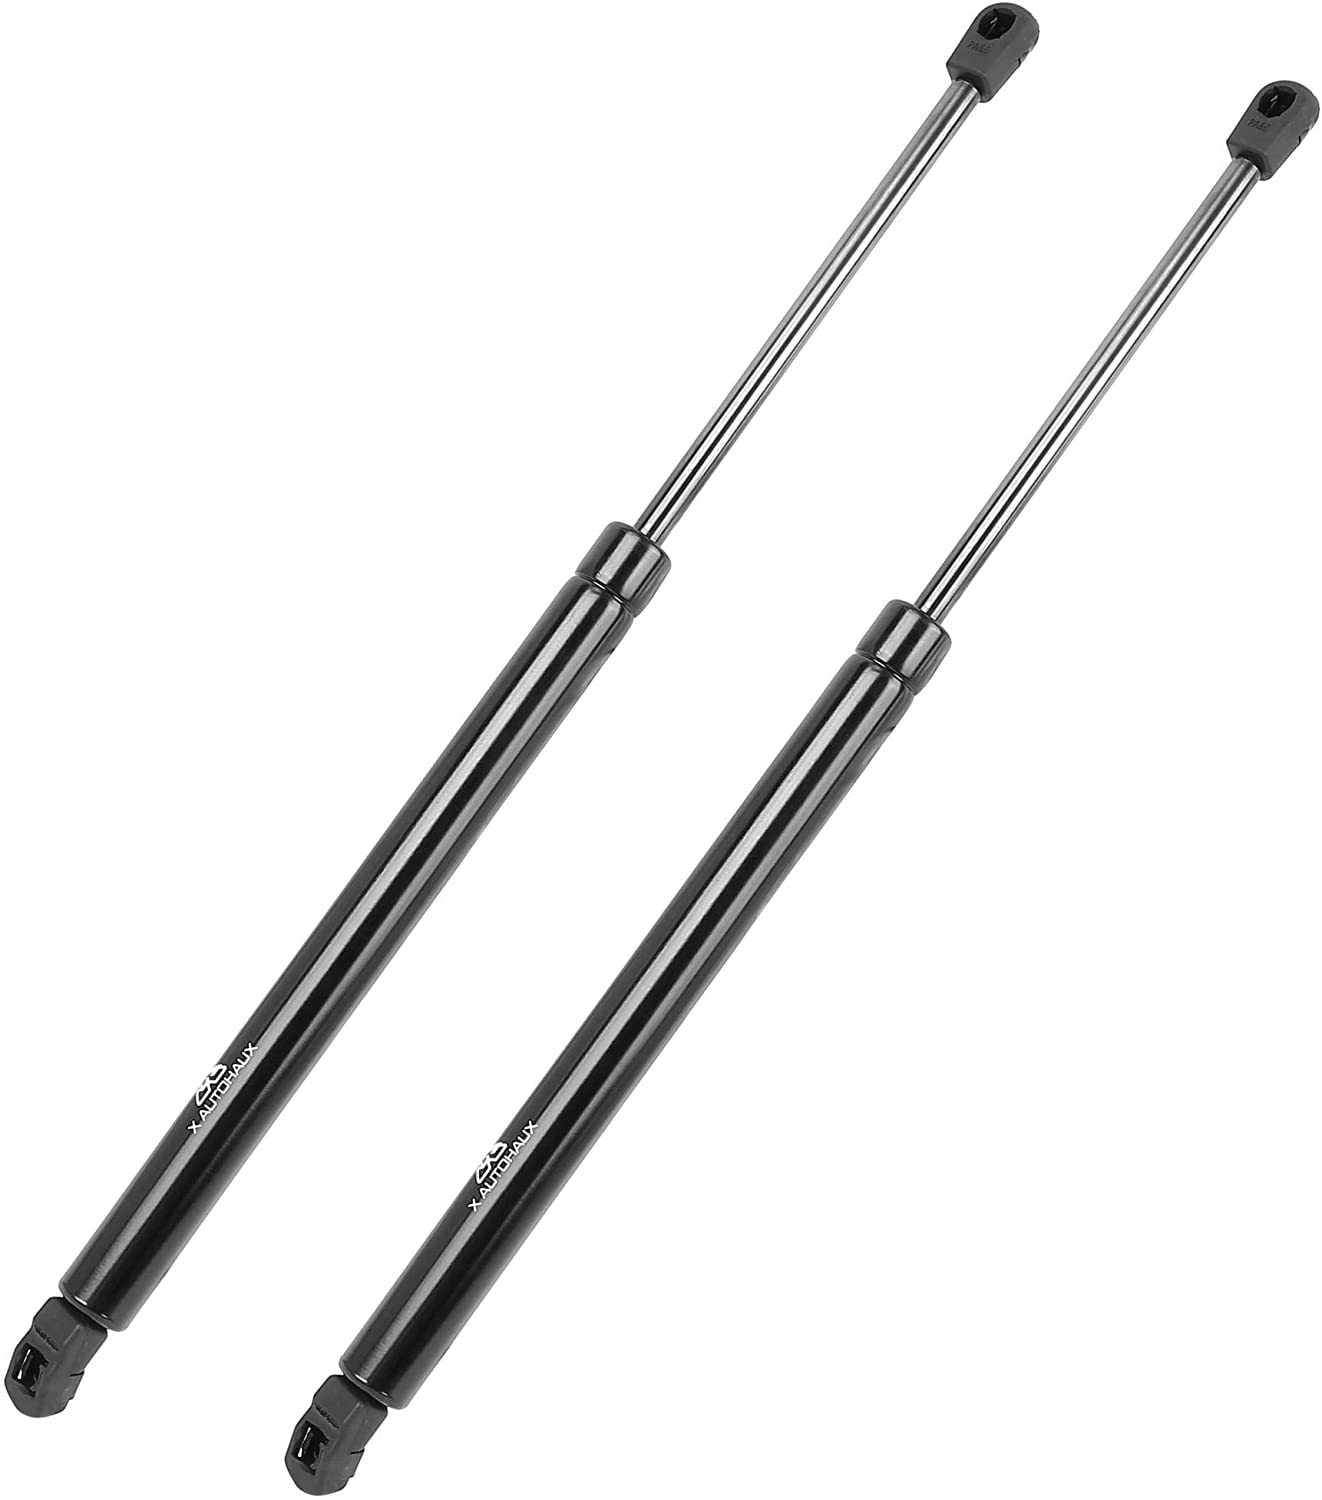 X AUTOHAUX 2pcs Rear Trunk Lift Supports Struts Shocks Gas Spring PM1017 for Hyundai Santa Fe 2007-2012